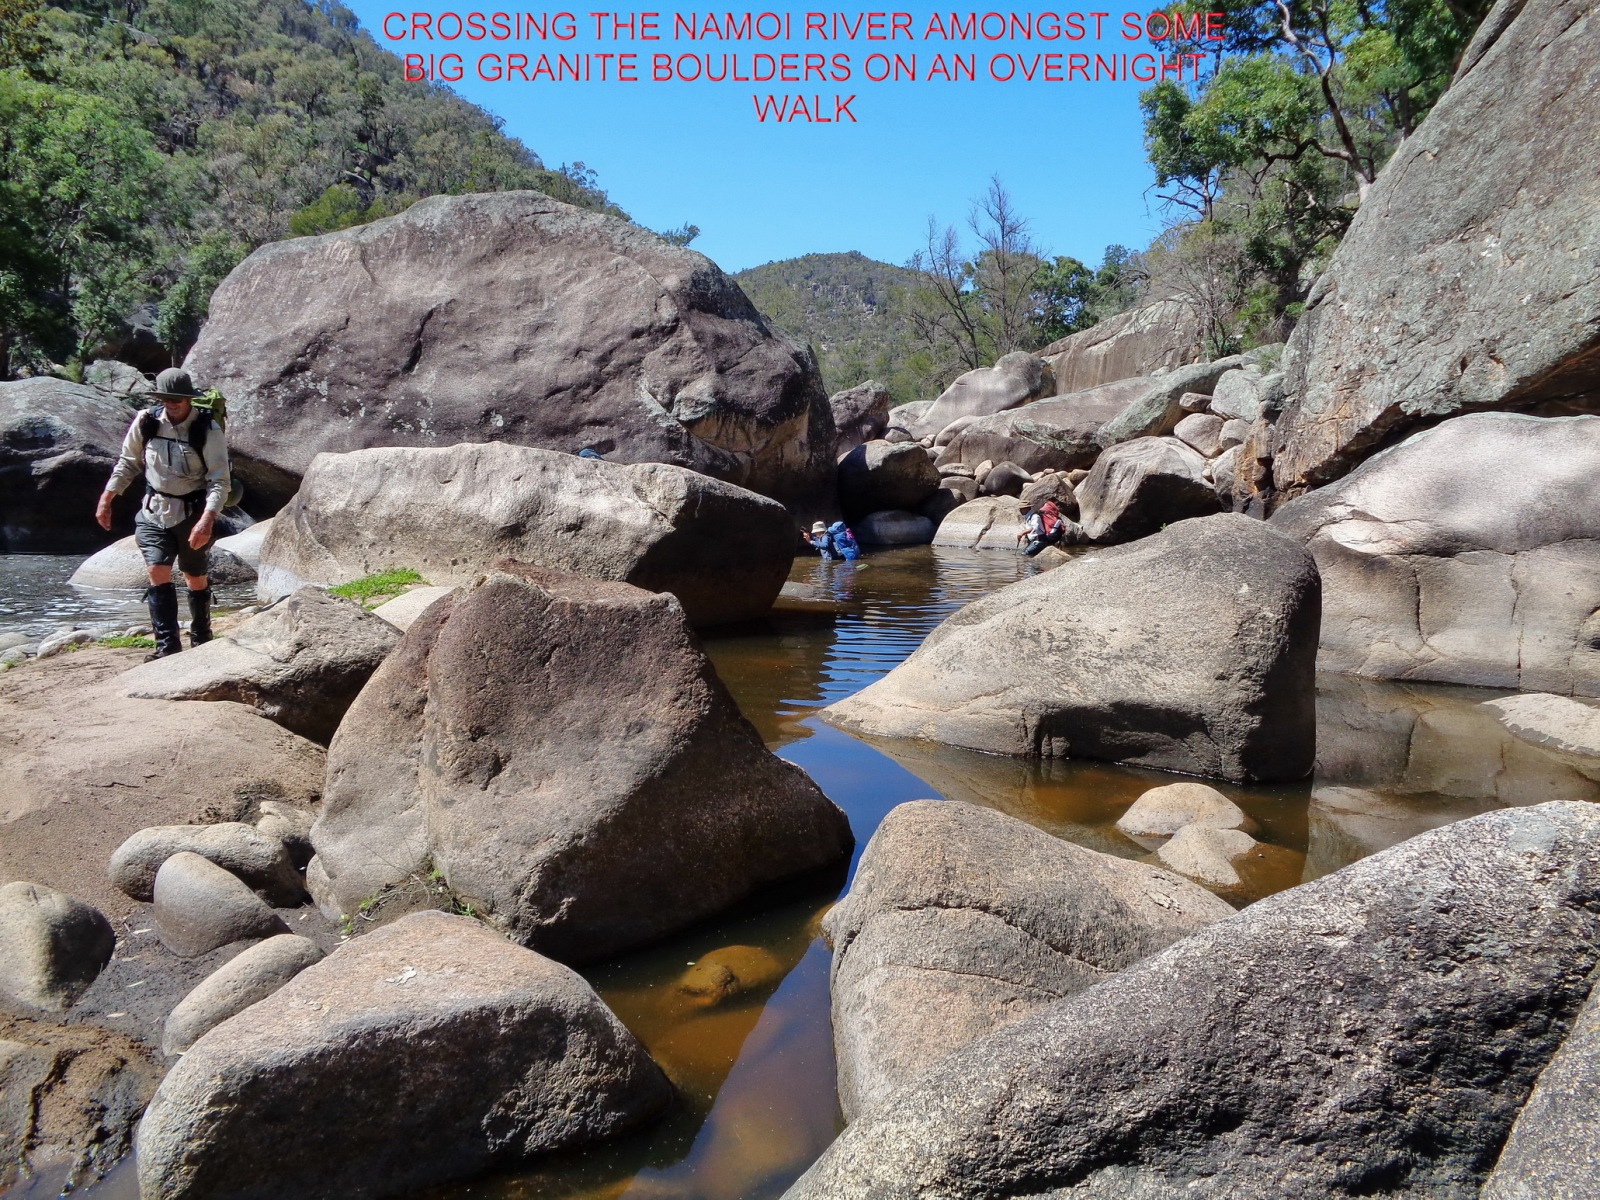 CROSSING THE NAMOI RIVER AMONGST SOME BIG GRANITE BOULDERS ON AN OVERNIGHT WALK